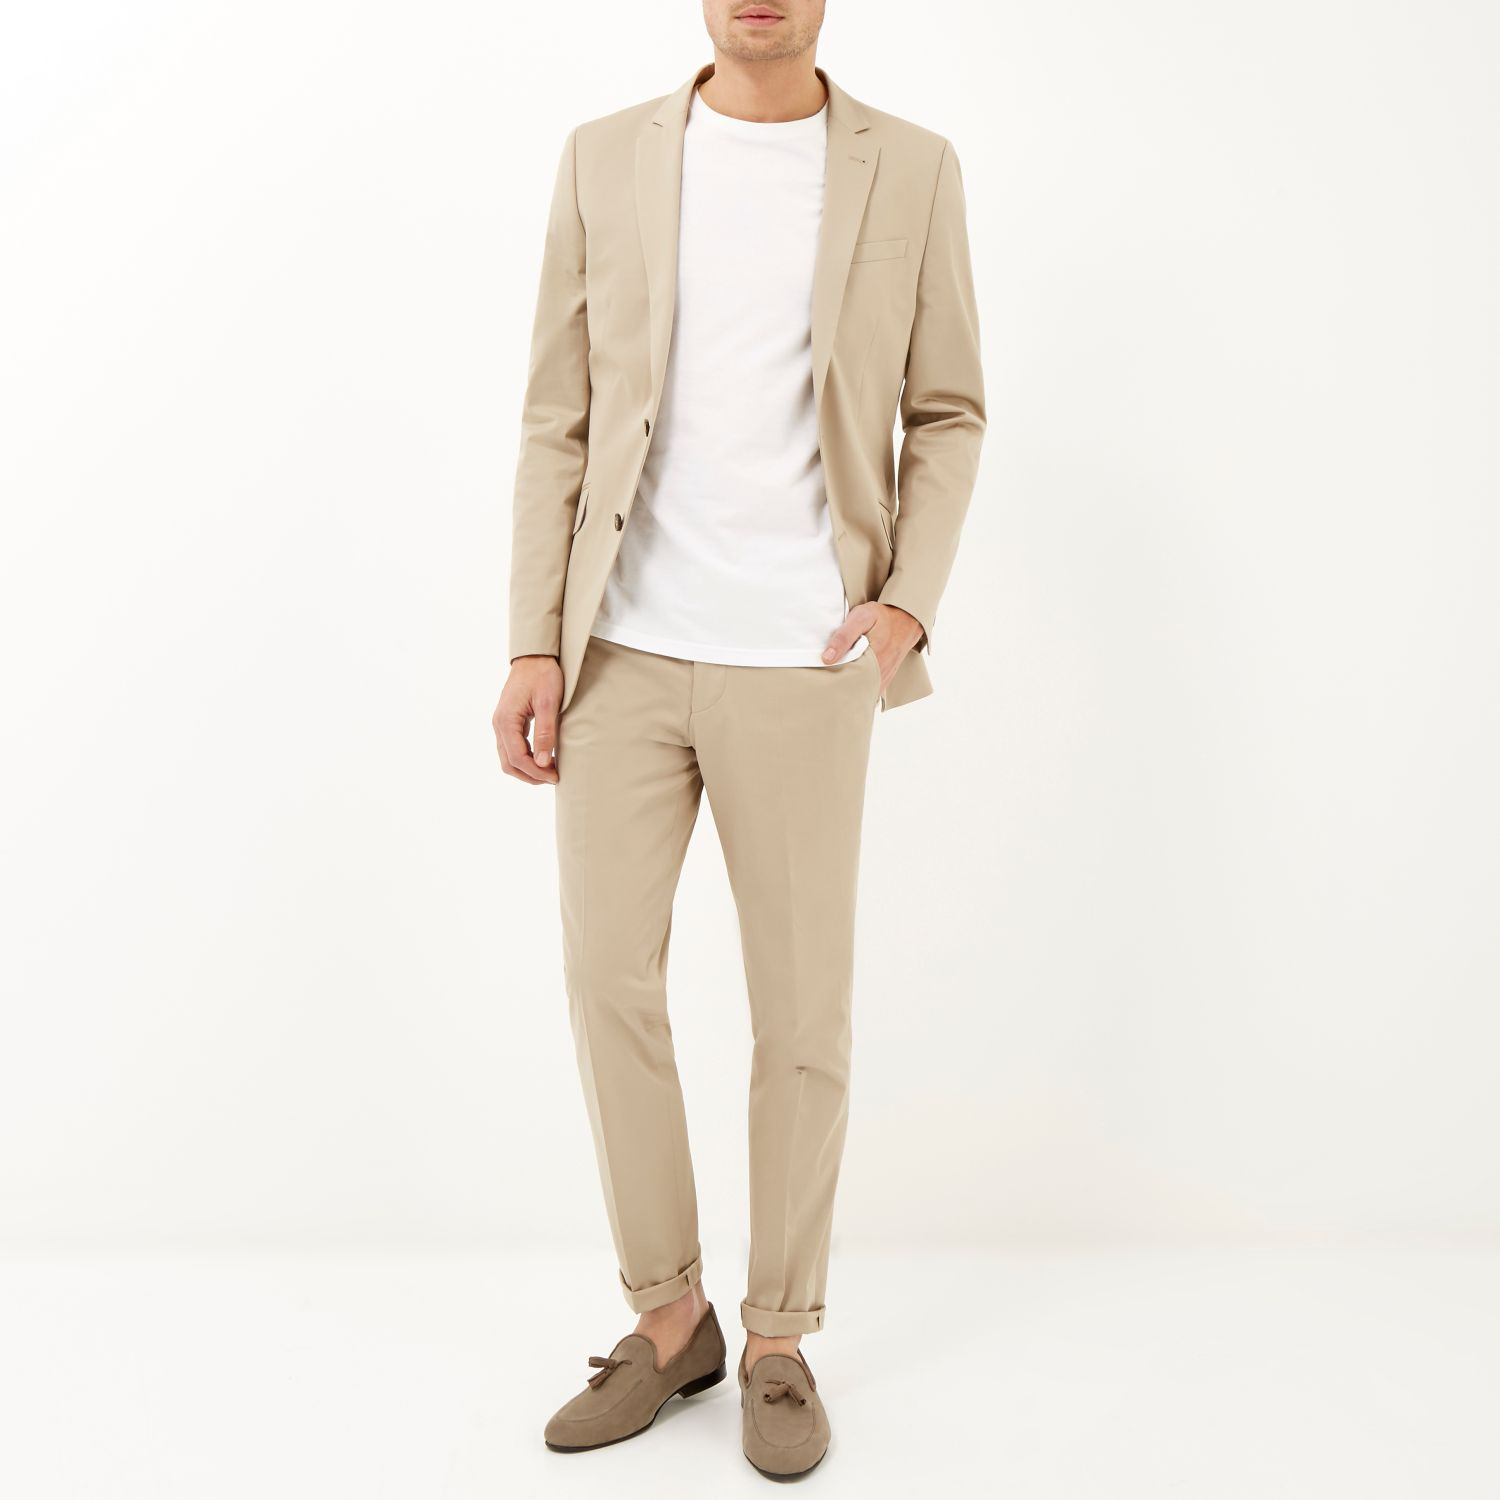 River island Cream Cotton Woven Skinny Suit Jacket in Natural for